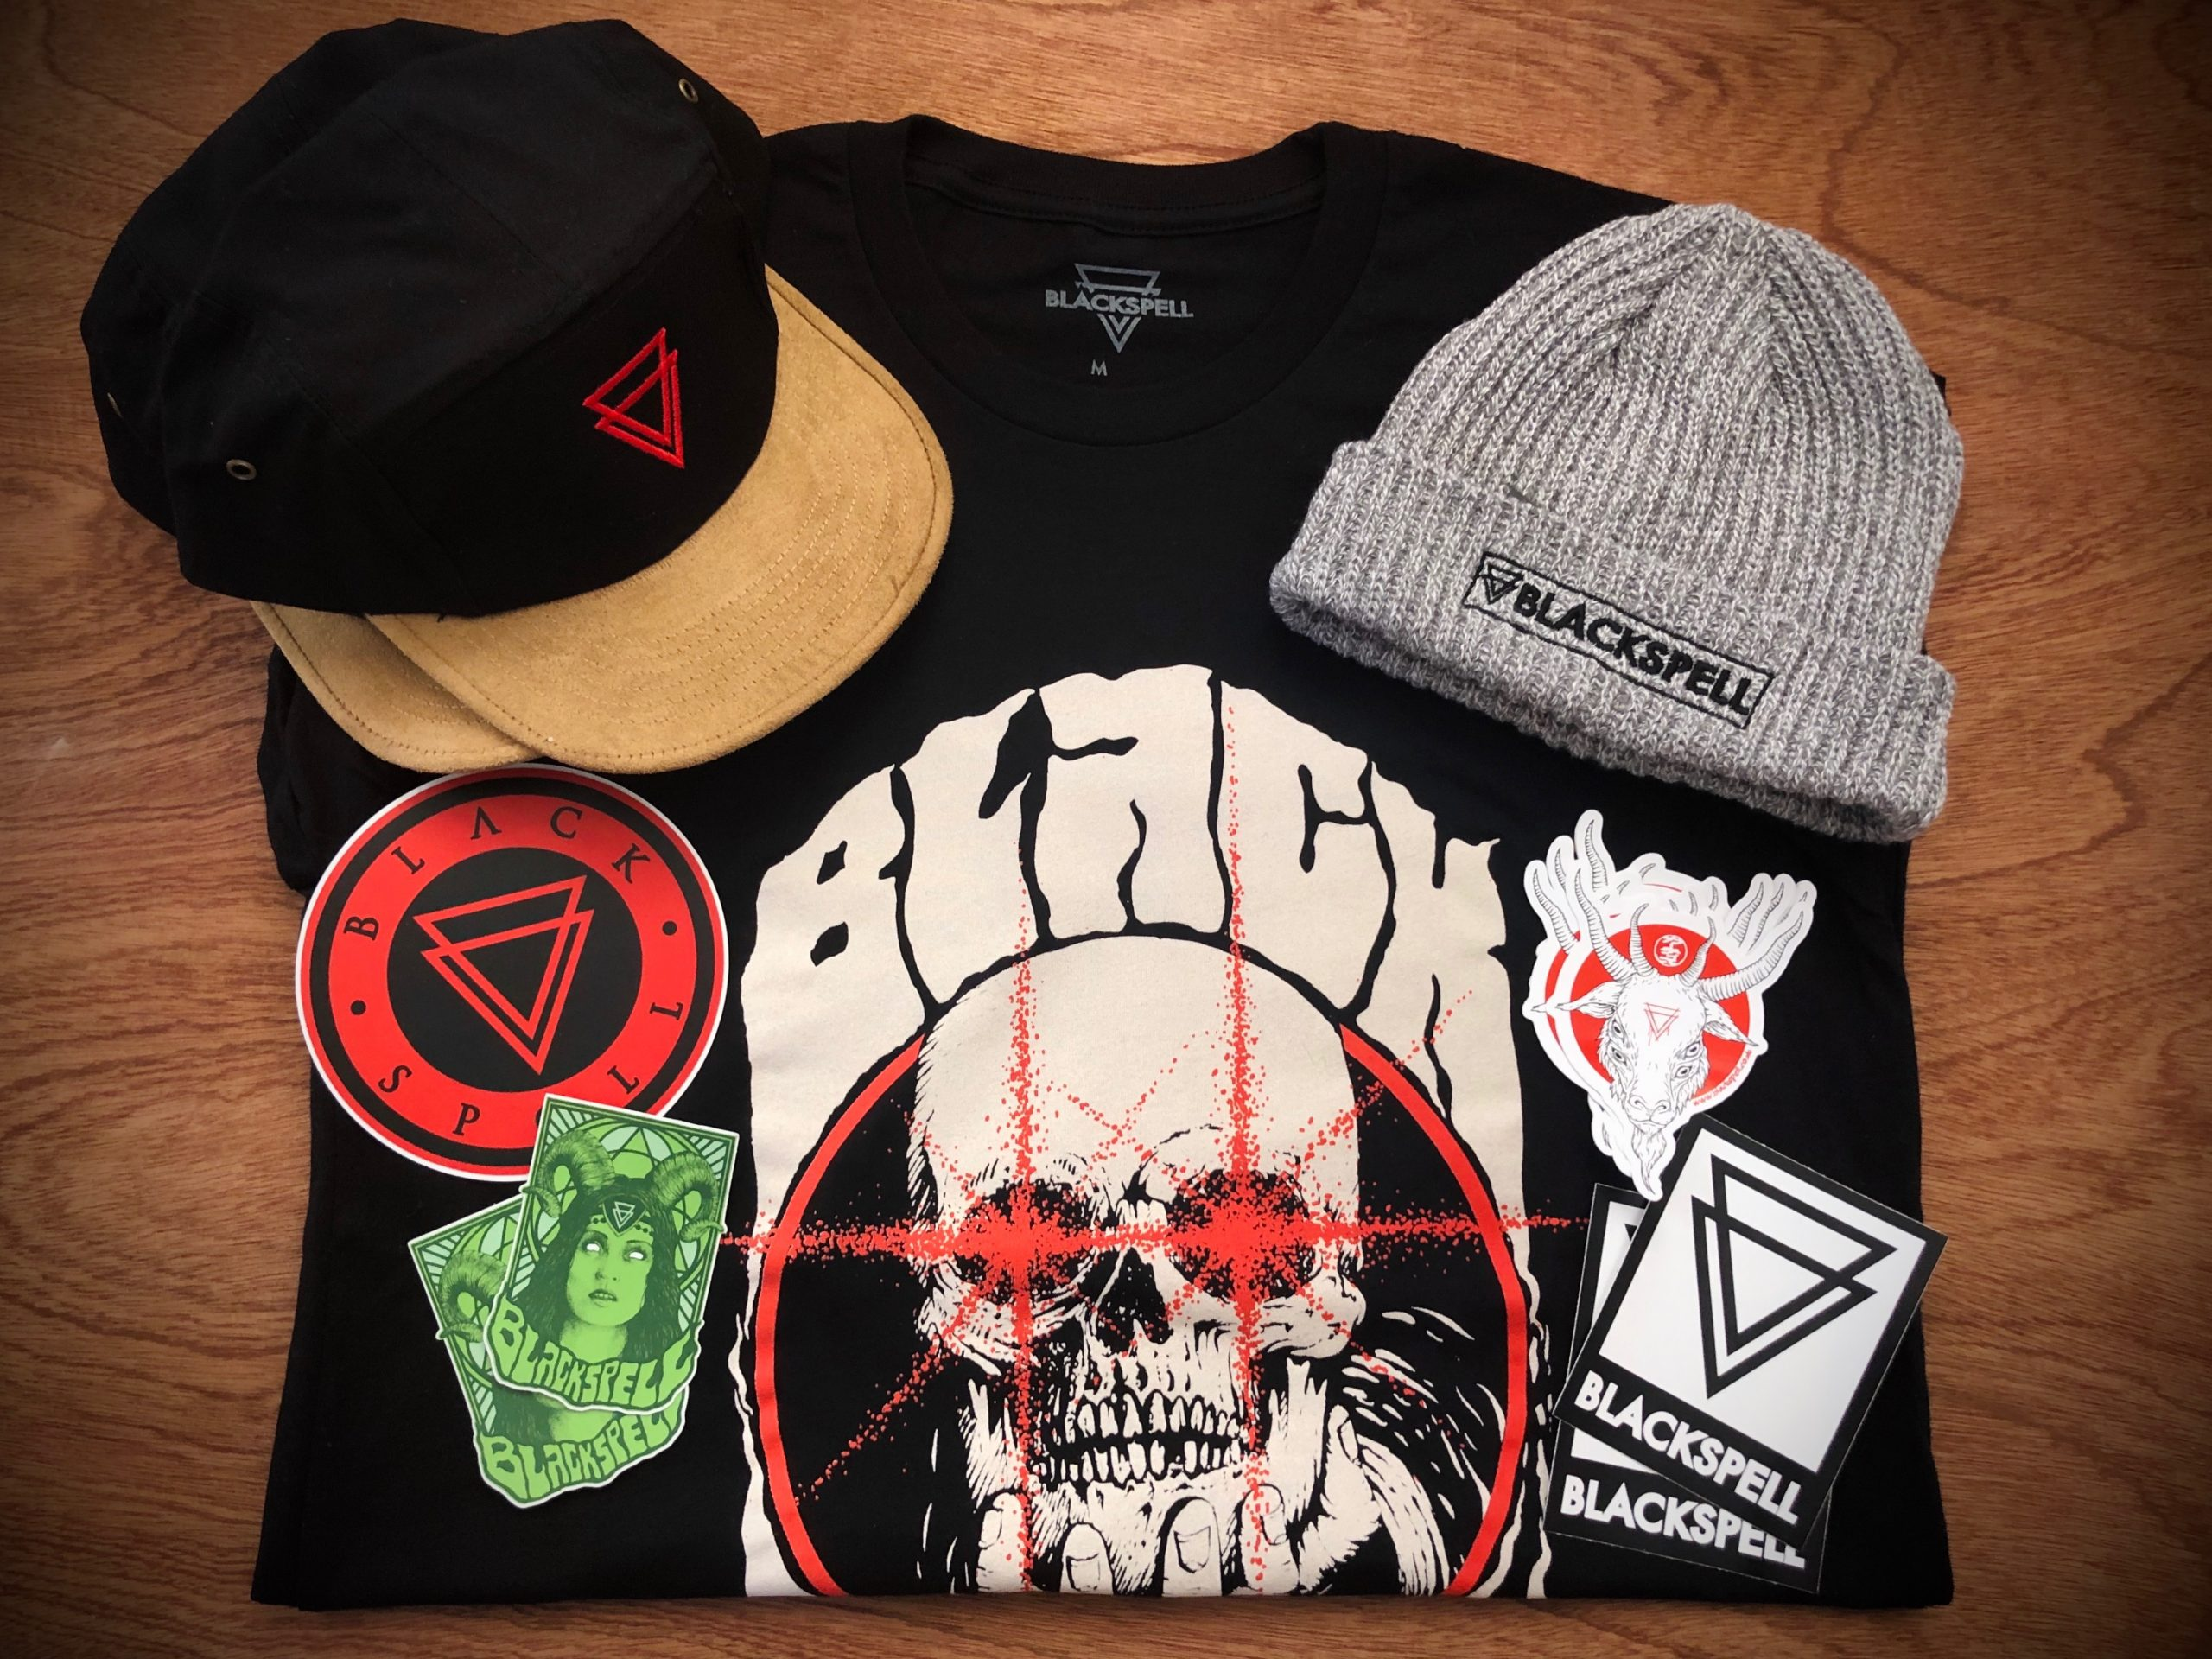 BLACK SPELL T-SHIRT AND HAT GIVEAWAY